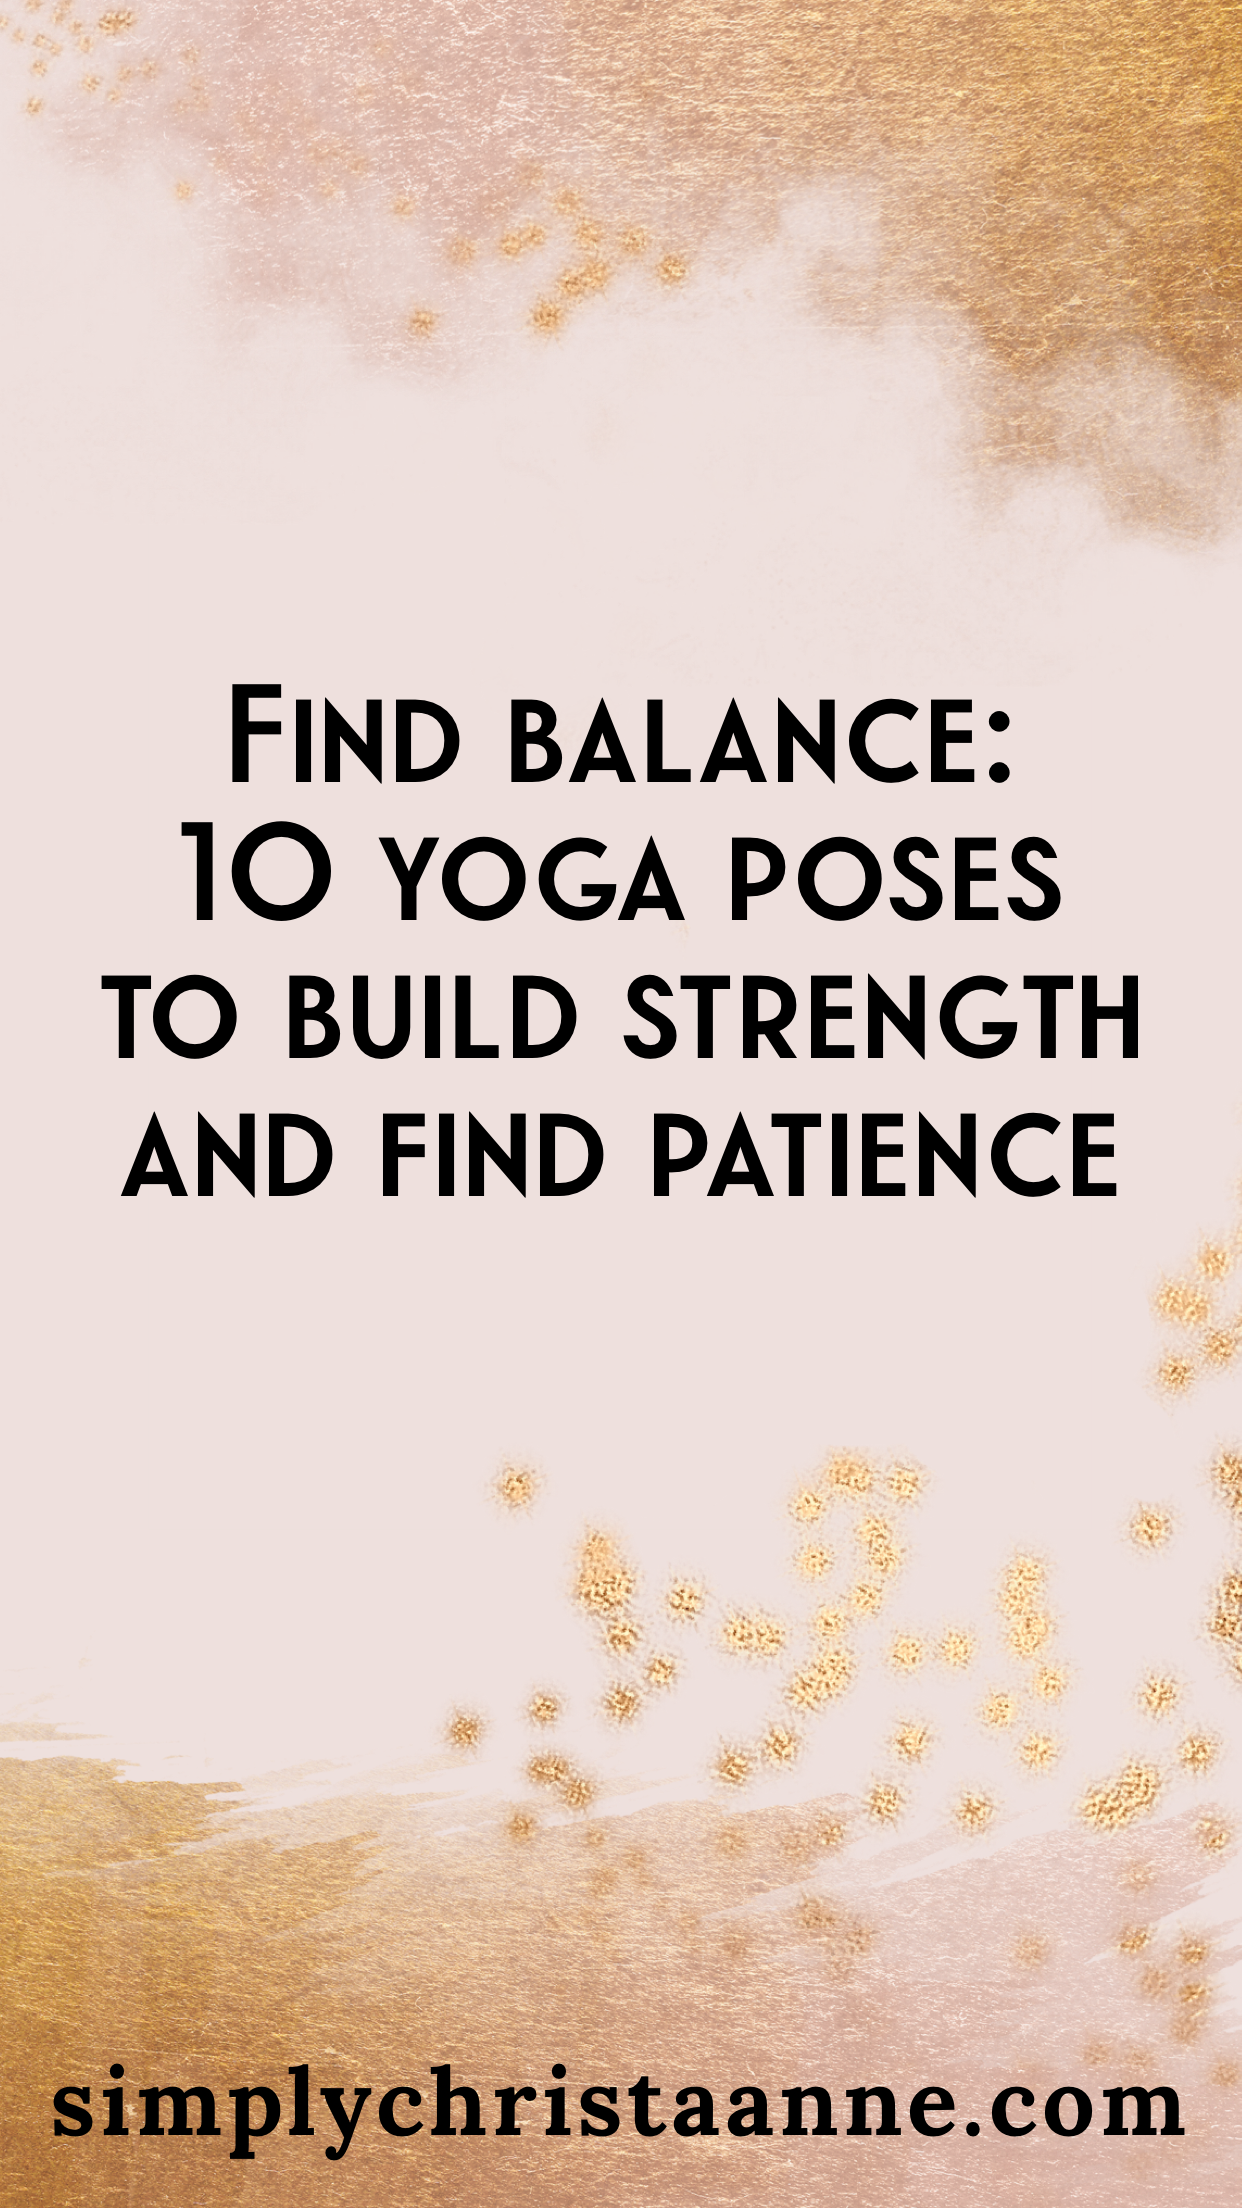 Find Balance: 10 Yoga Poses to Build Strength and Find Patience -  Yoga is a dance between effort an...